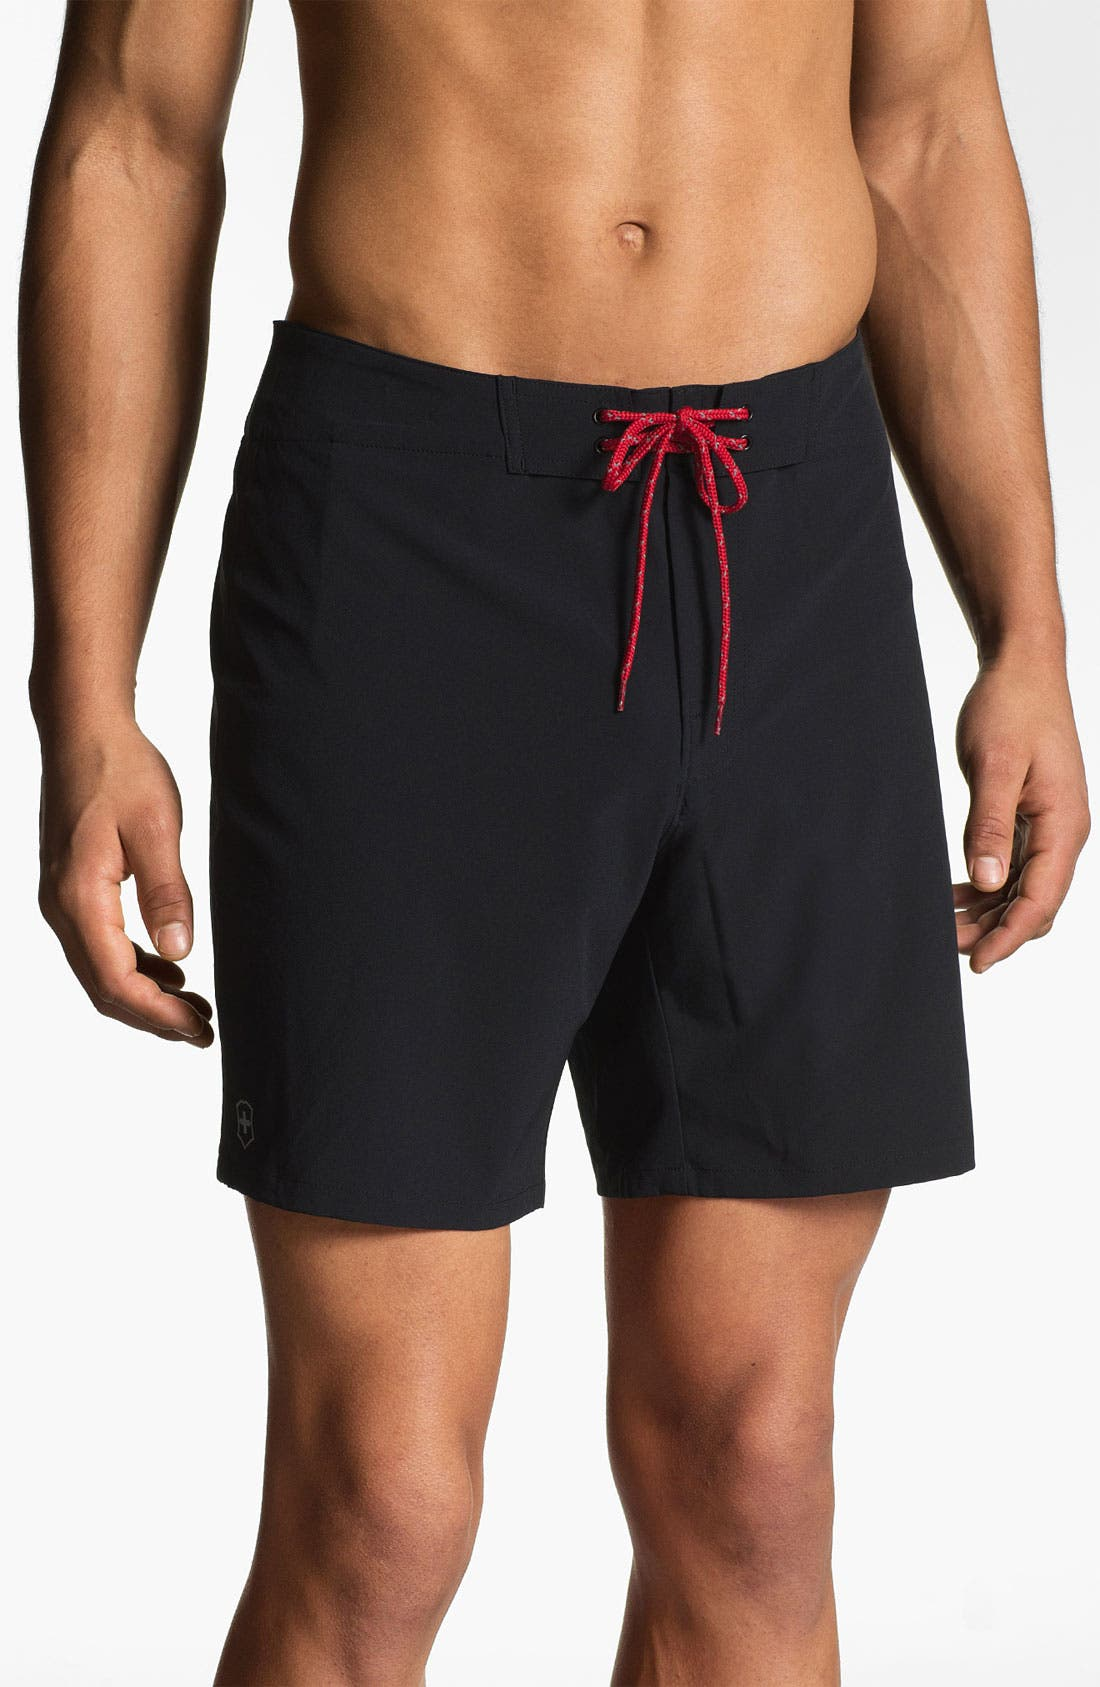 Alternate Image 1 Selected - Victorinox Swiss Army® 'Pipeline' Board Shorts